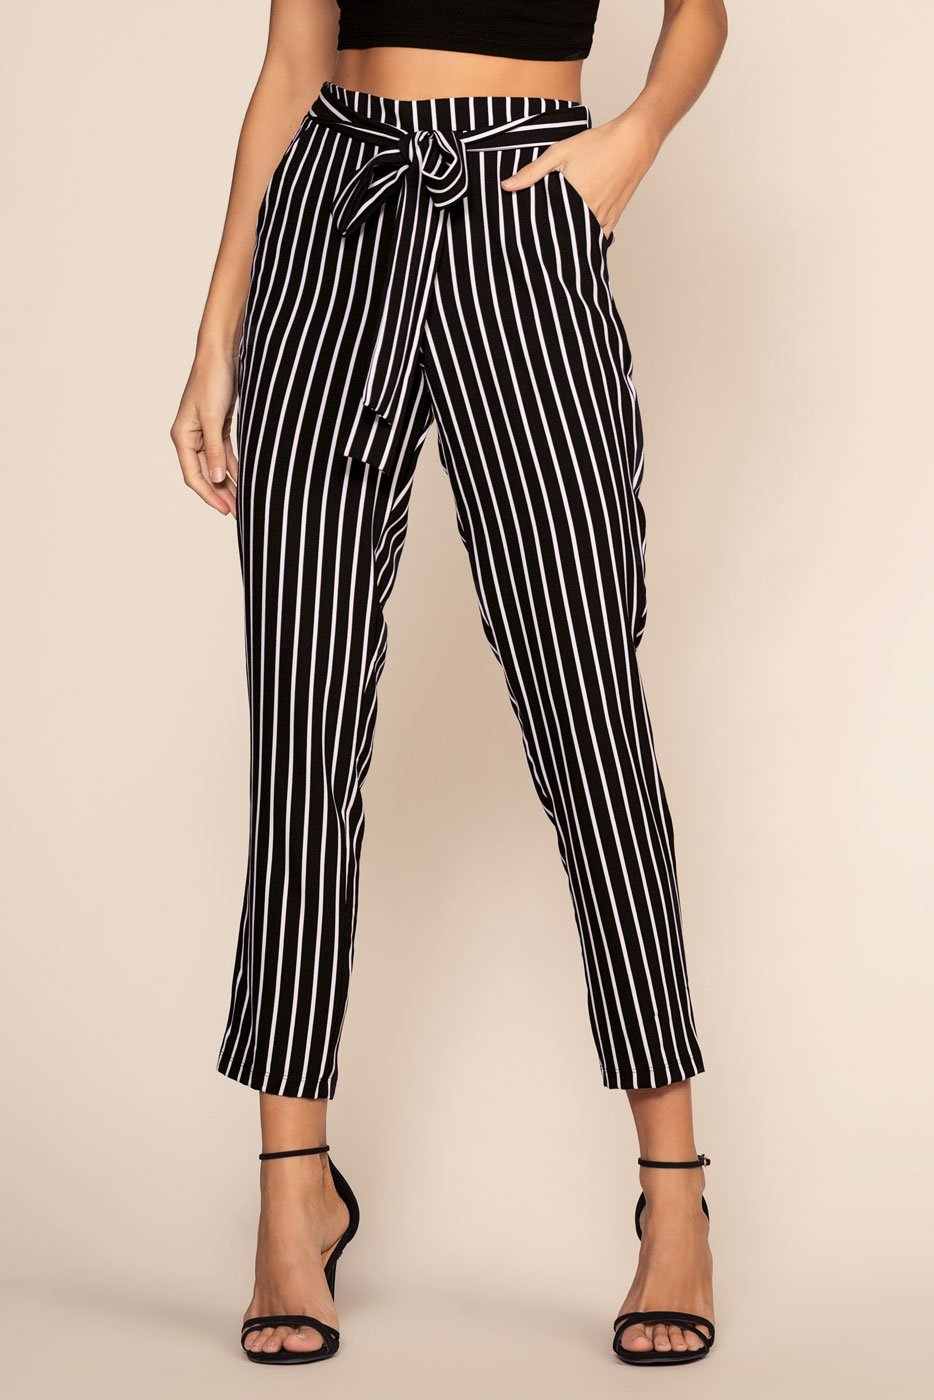 Black Stripe Highwaist Crop pants